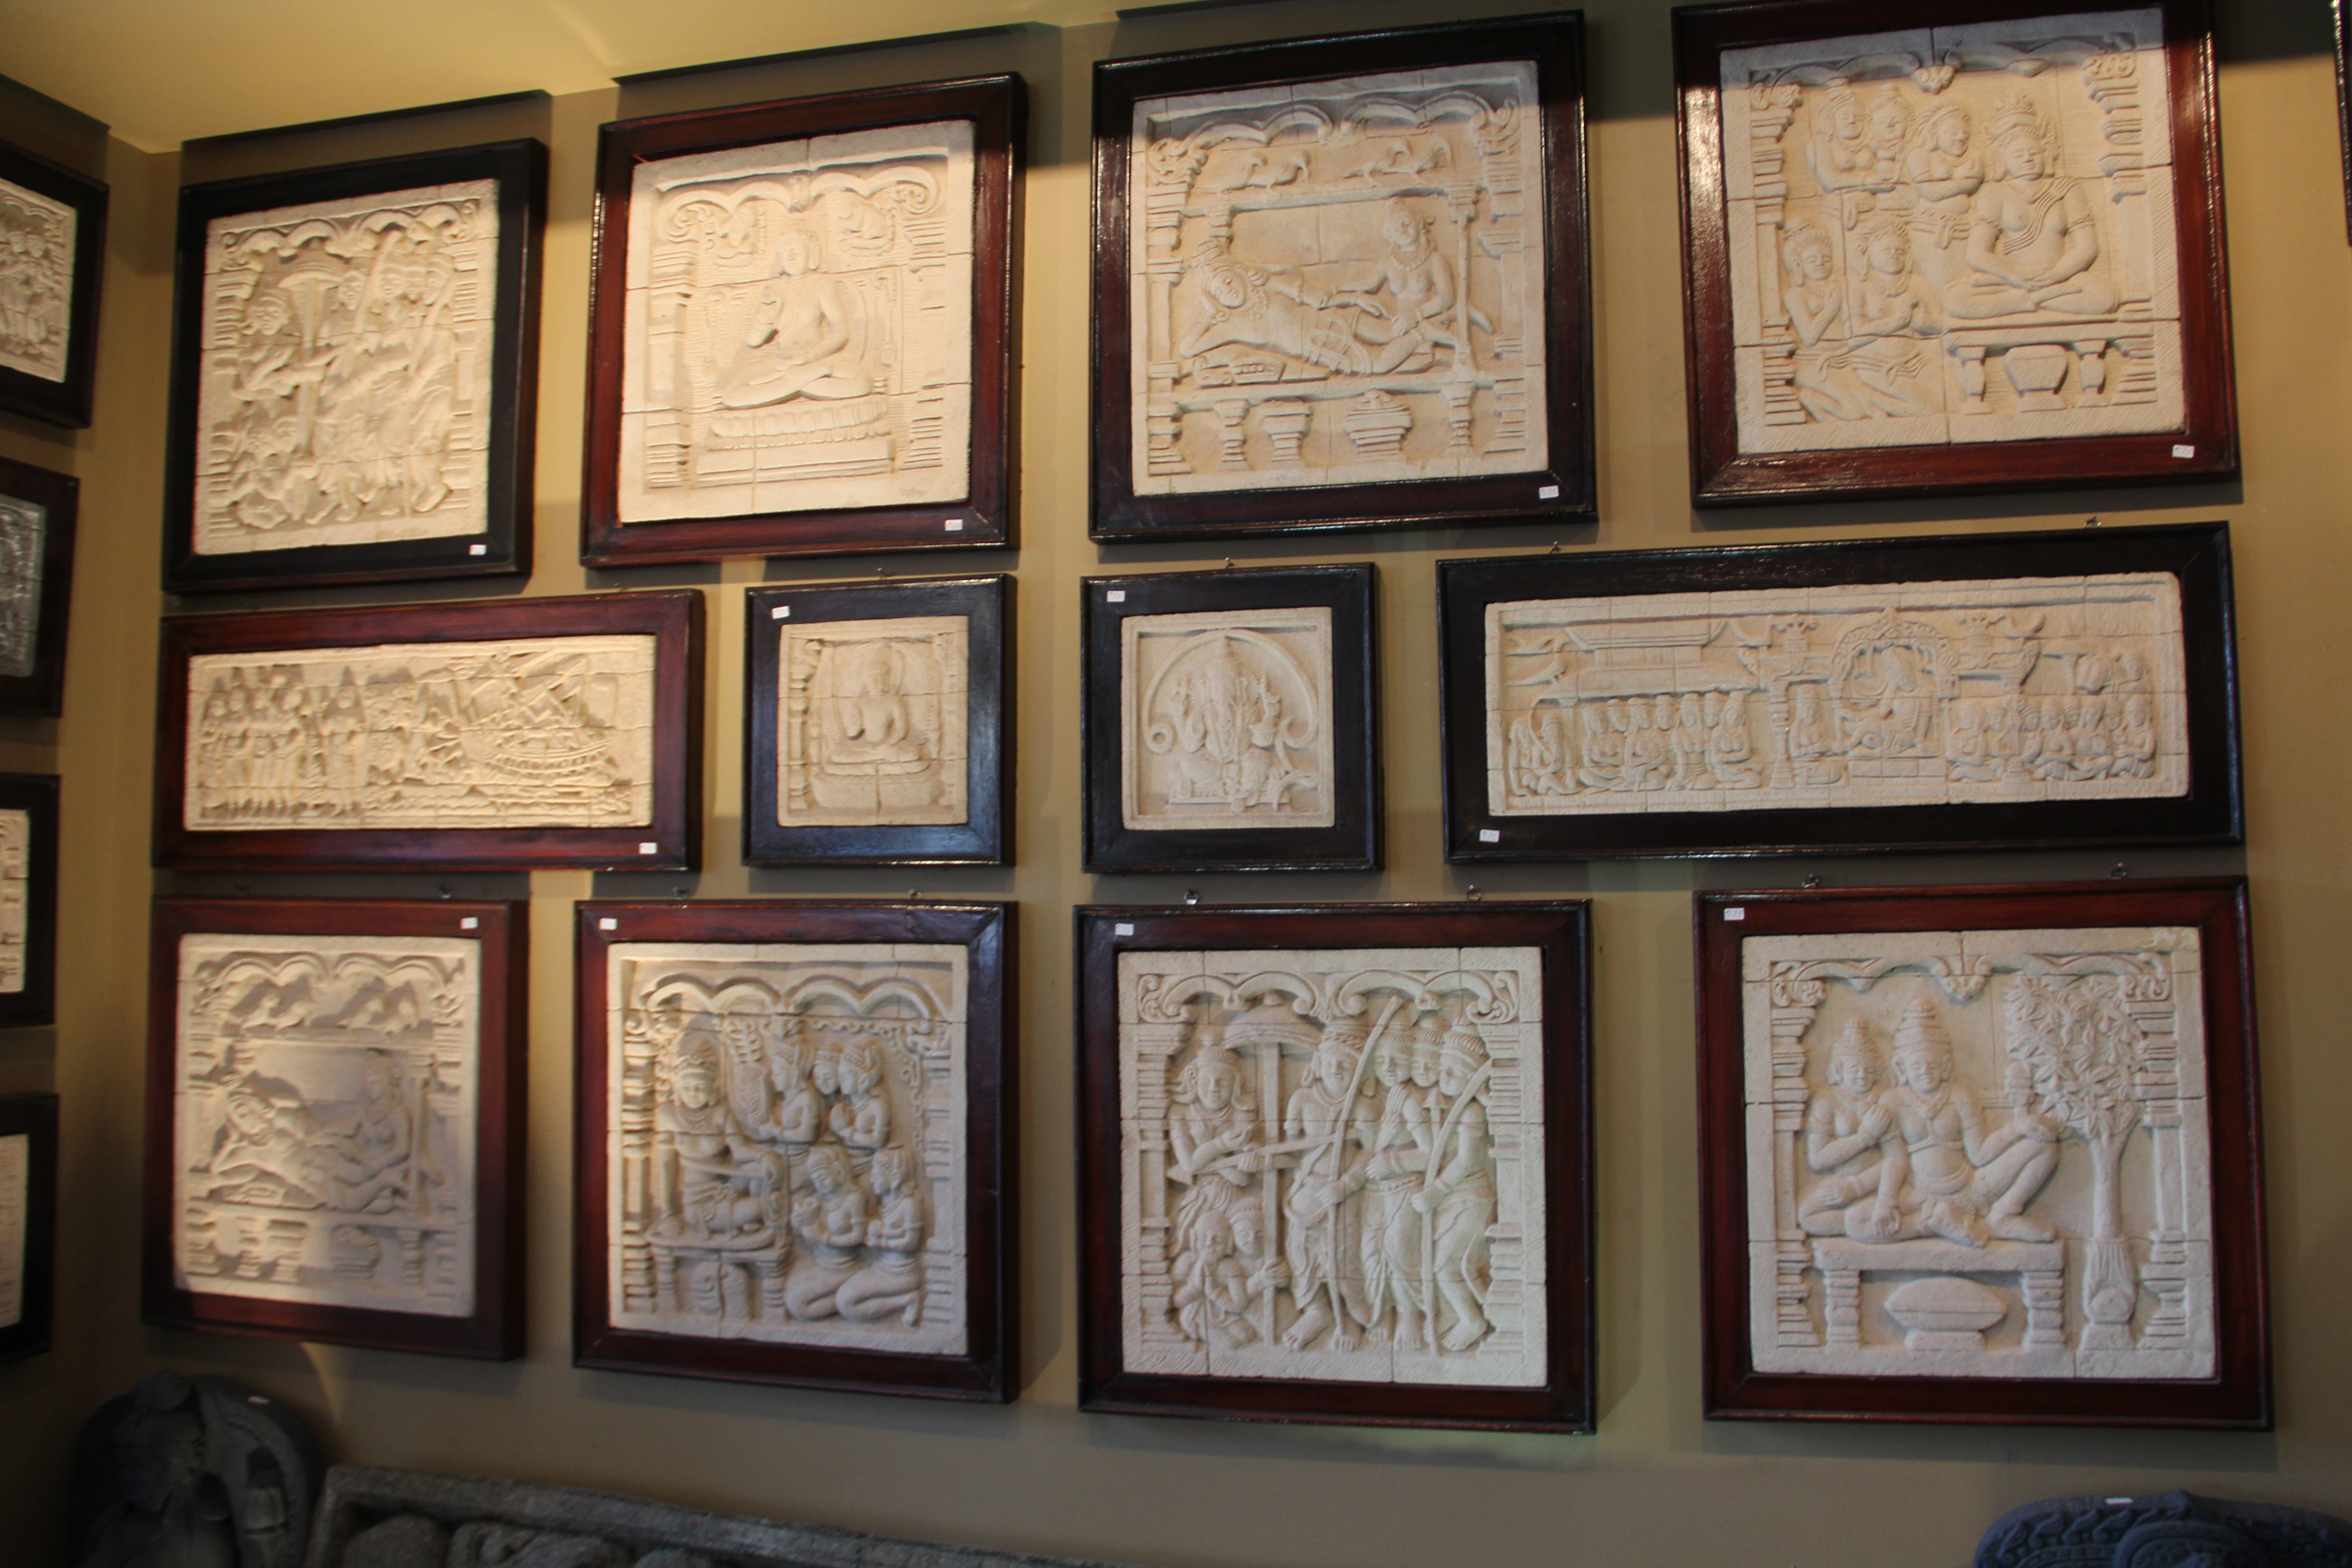 Stone Relief Carvings